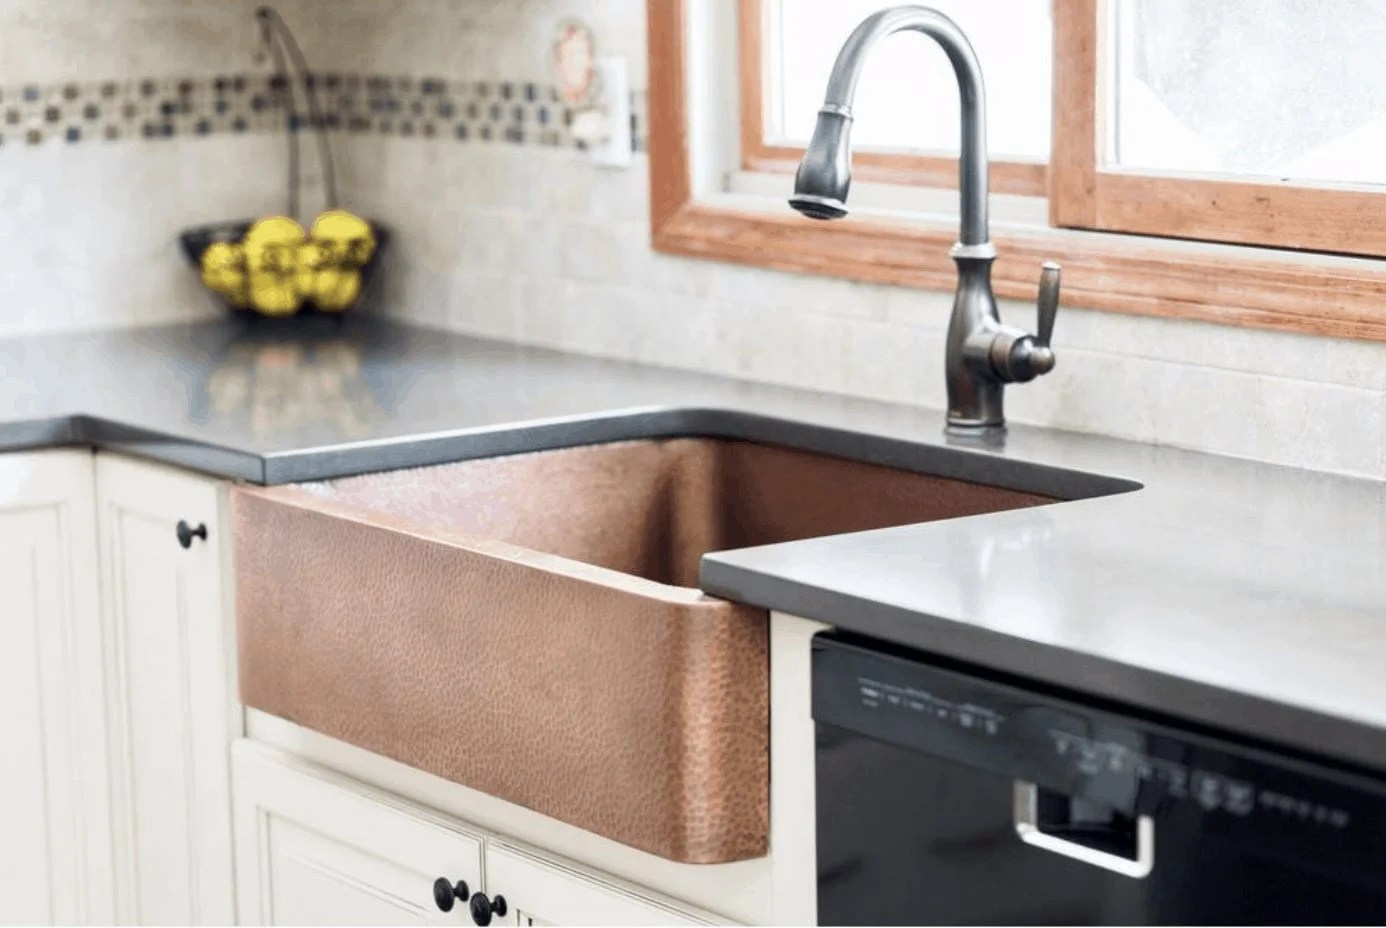 Copper sinks are a new trend we're seeing